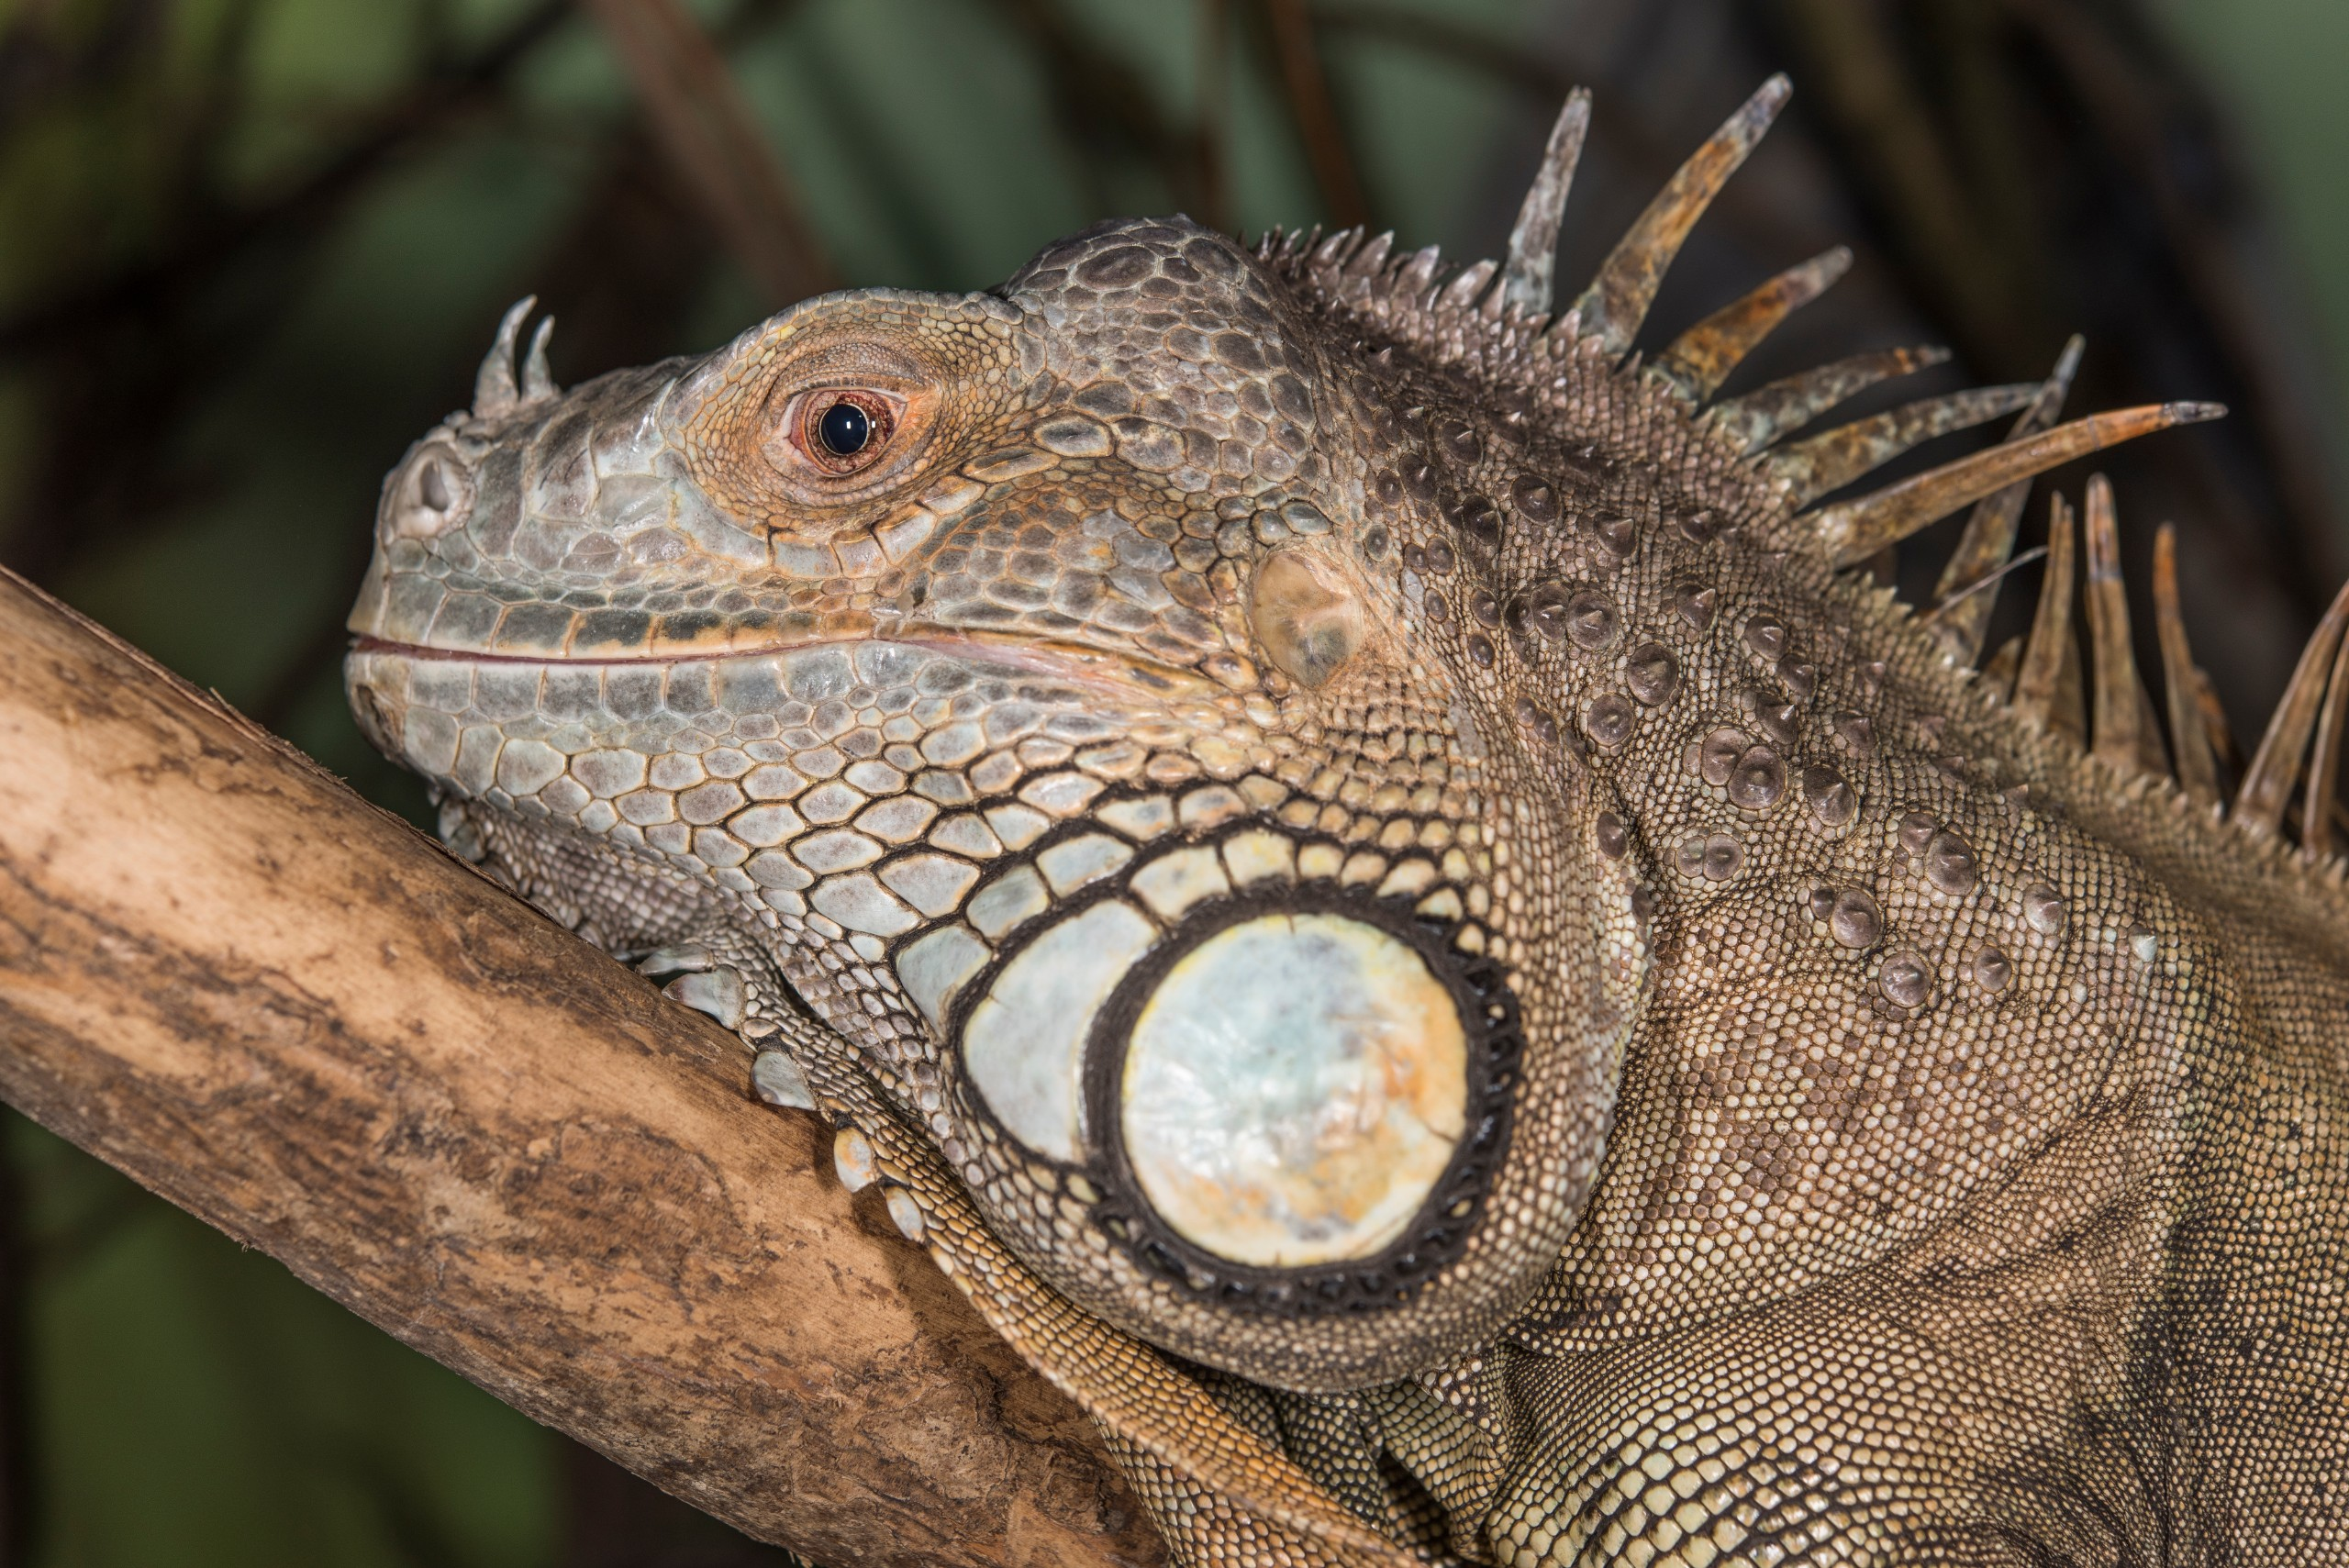 Green iguana - fun facts and information for kids - Folly Farm